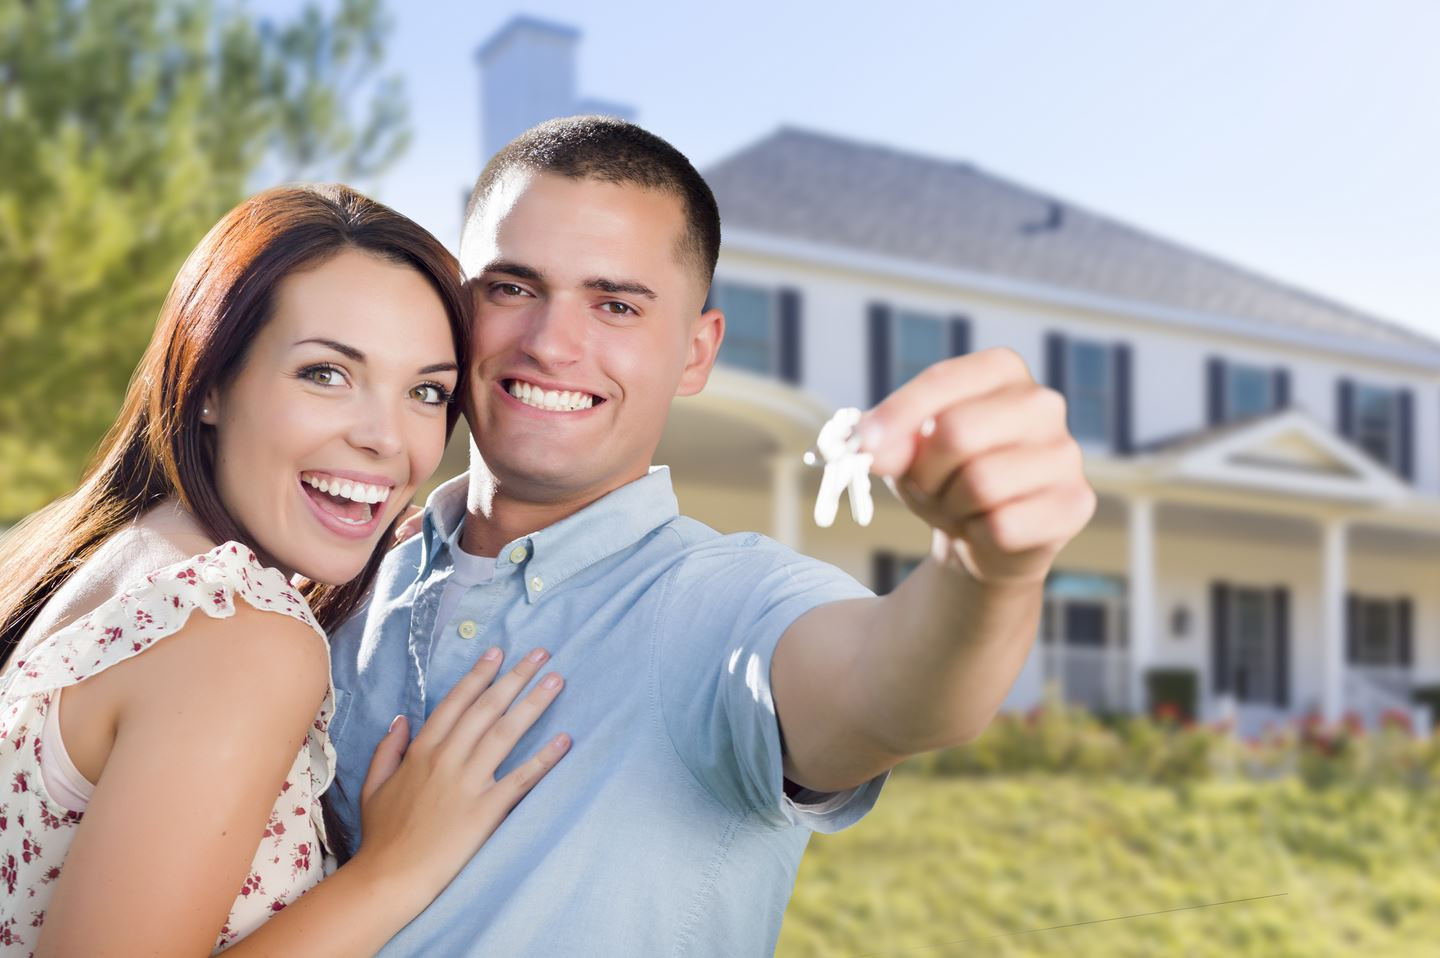 Are You a New Home Buyer